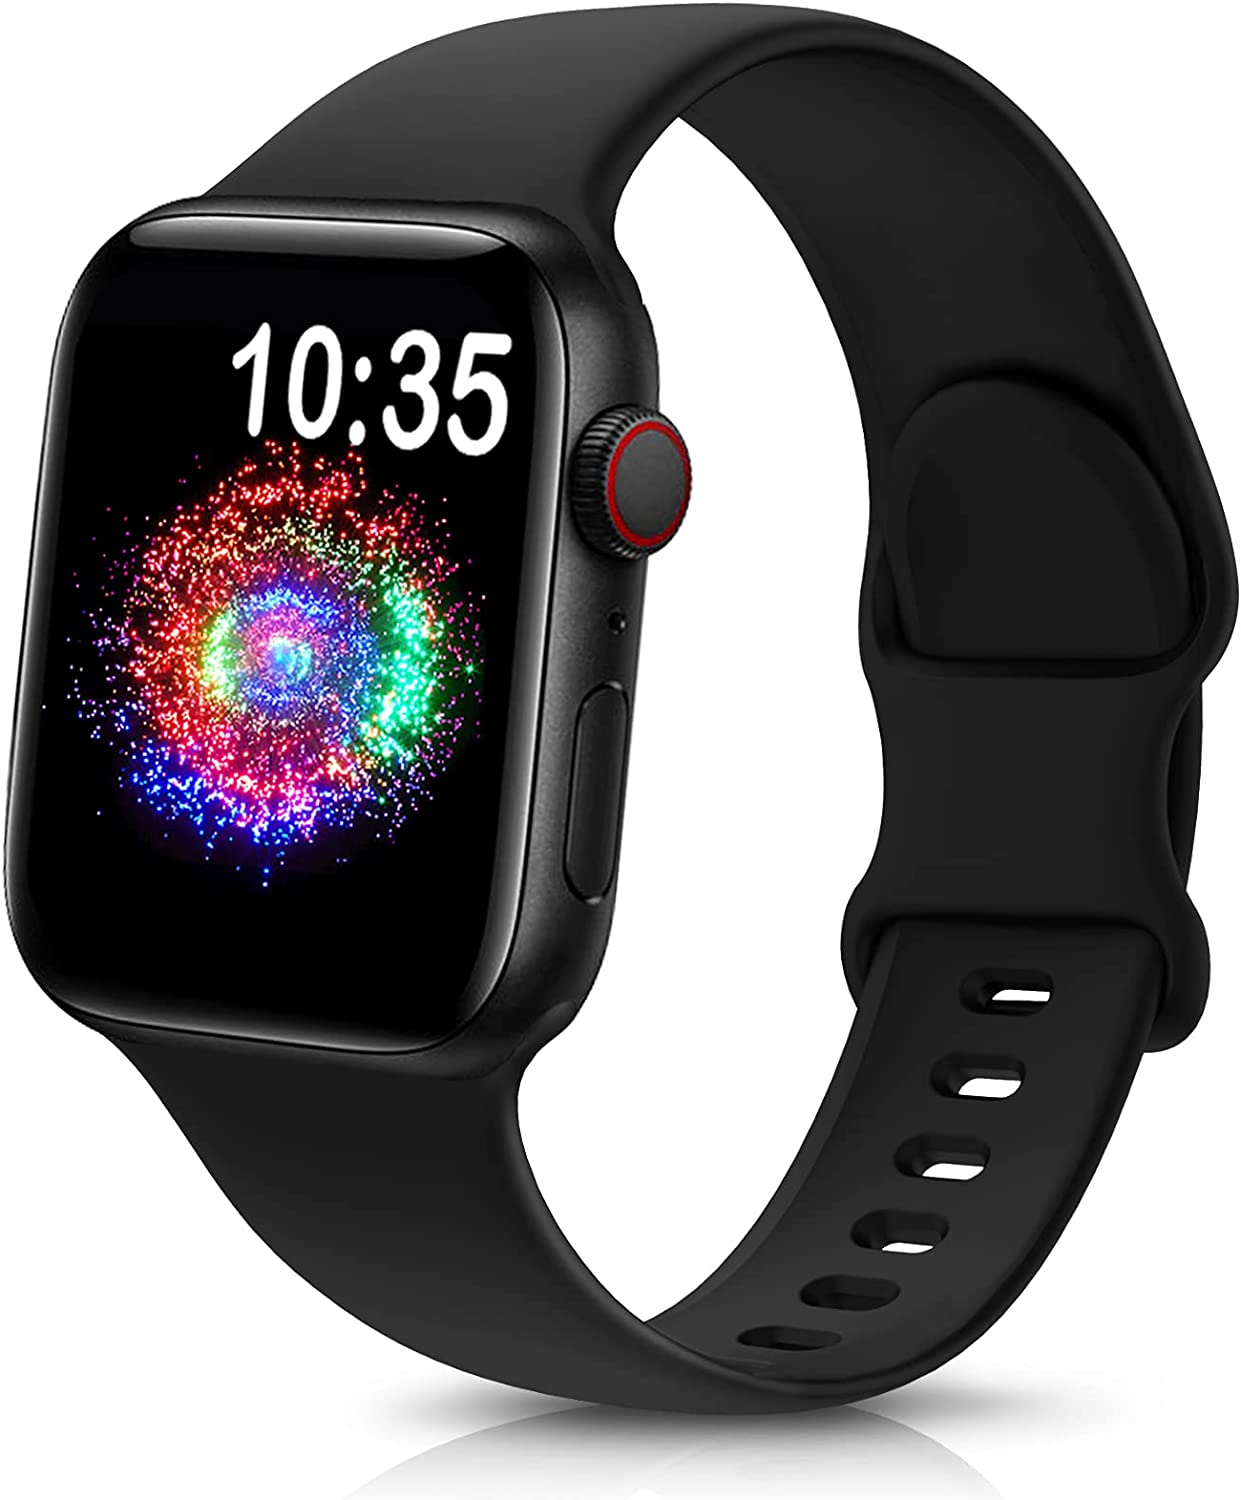 TreasureMax Sport Band Compatible with Apple Watch Bands 38mm 40mm 42mm 44mm, Soft Silicone Replacement Strap Compatible for Apple Watch Series 6 5 4 3 2 1 SE Men Women Black 38MM/40MM